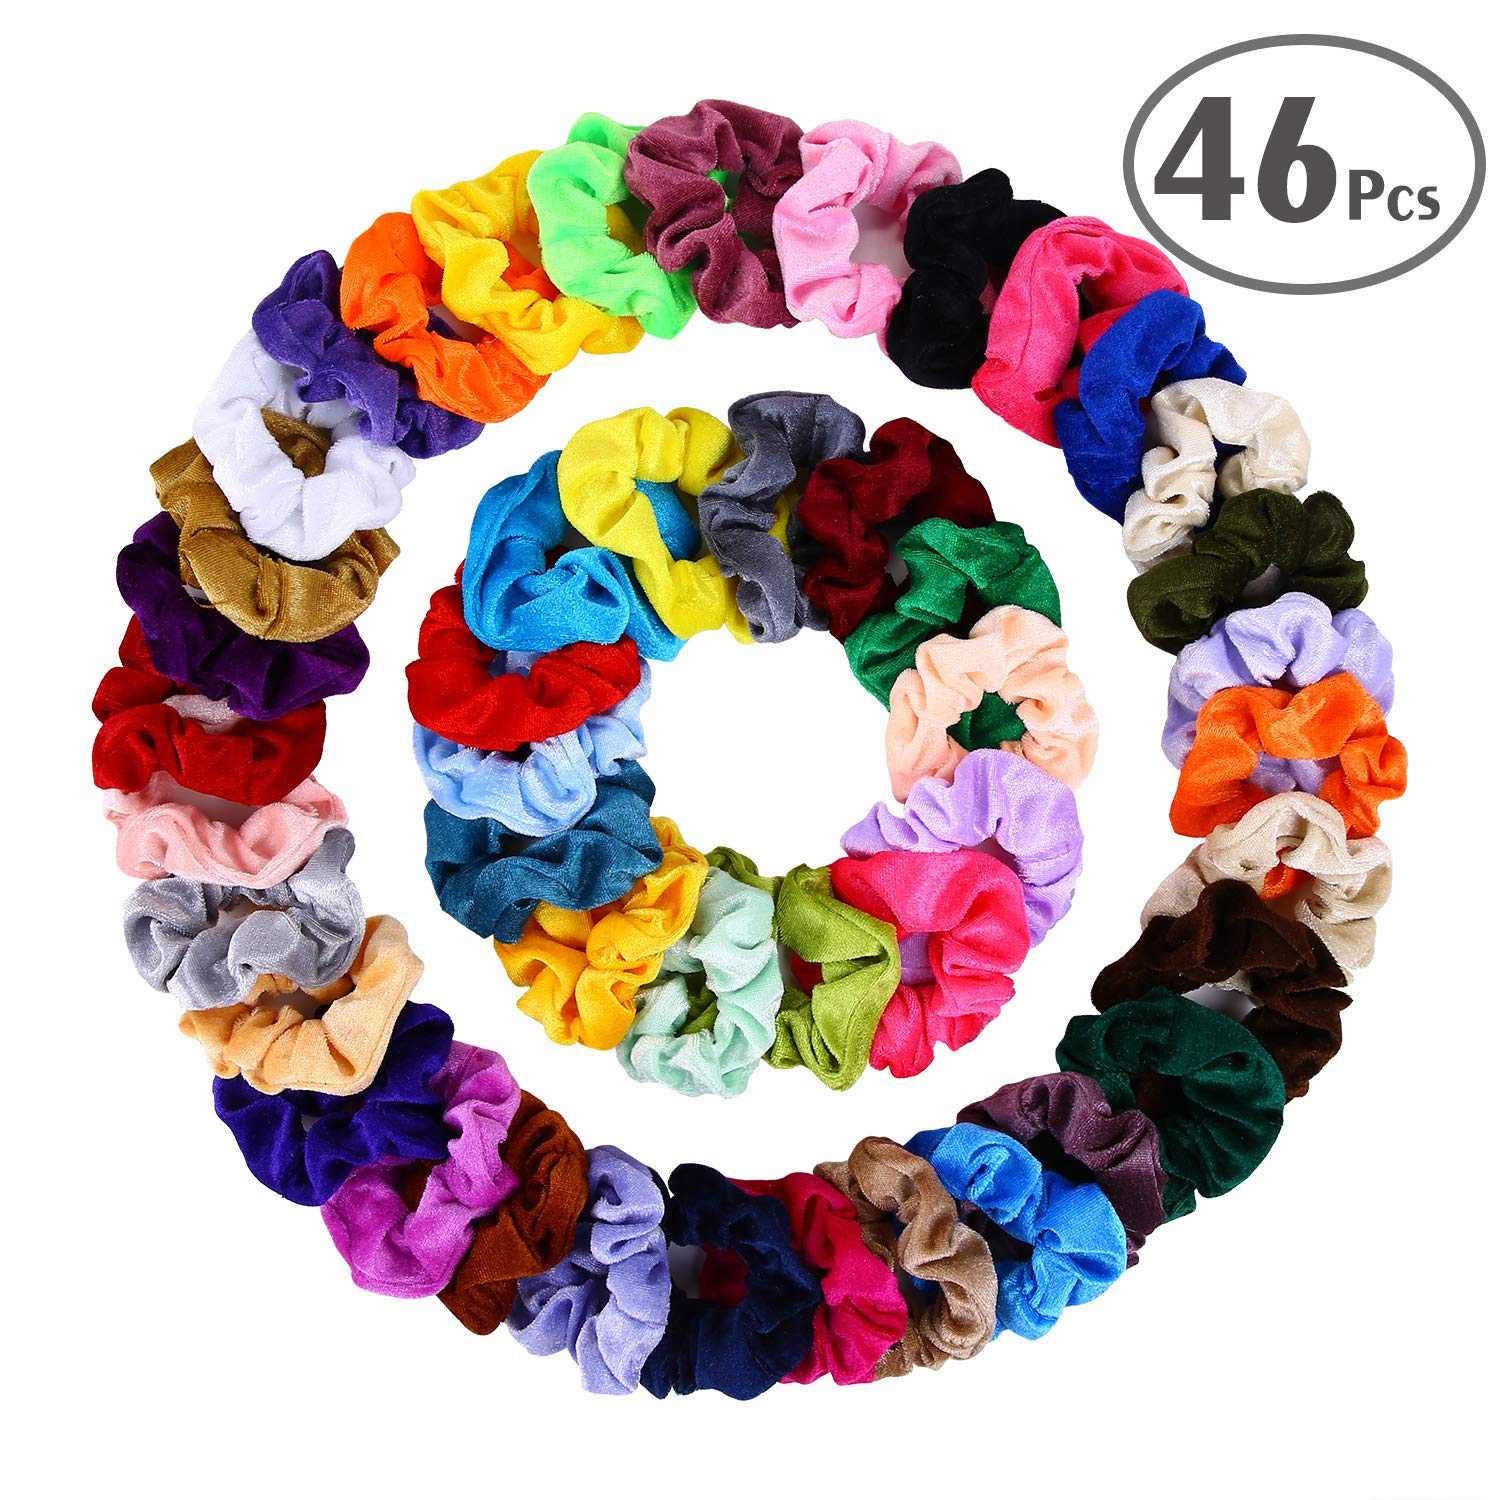 amazon.com - Hair Scrunchies Velvet Elastic Hair Bands Scrunchy Hair Ties Ropes Scrunchie for Women or Girls Hair Accessories - 46 Assorted Colors Scrunchies